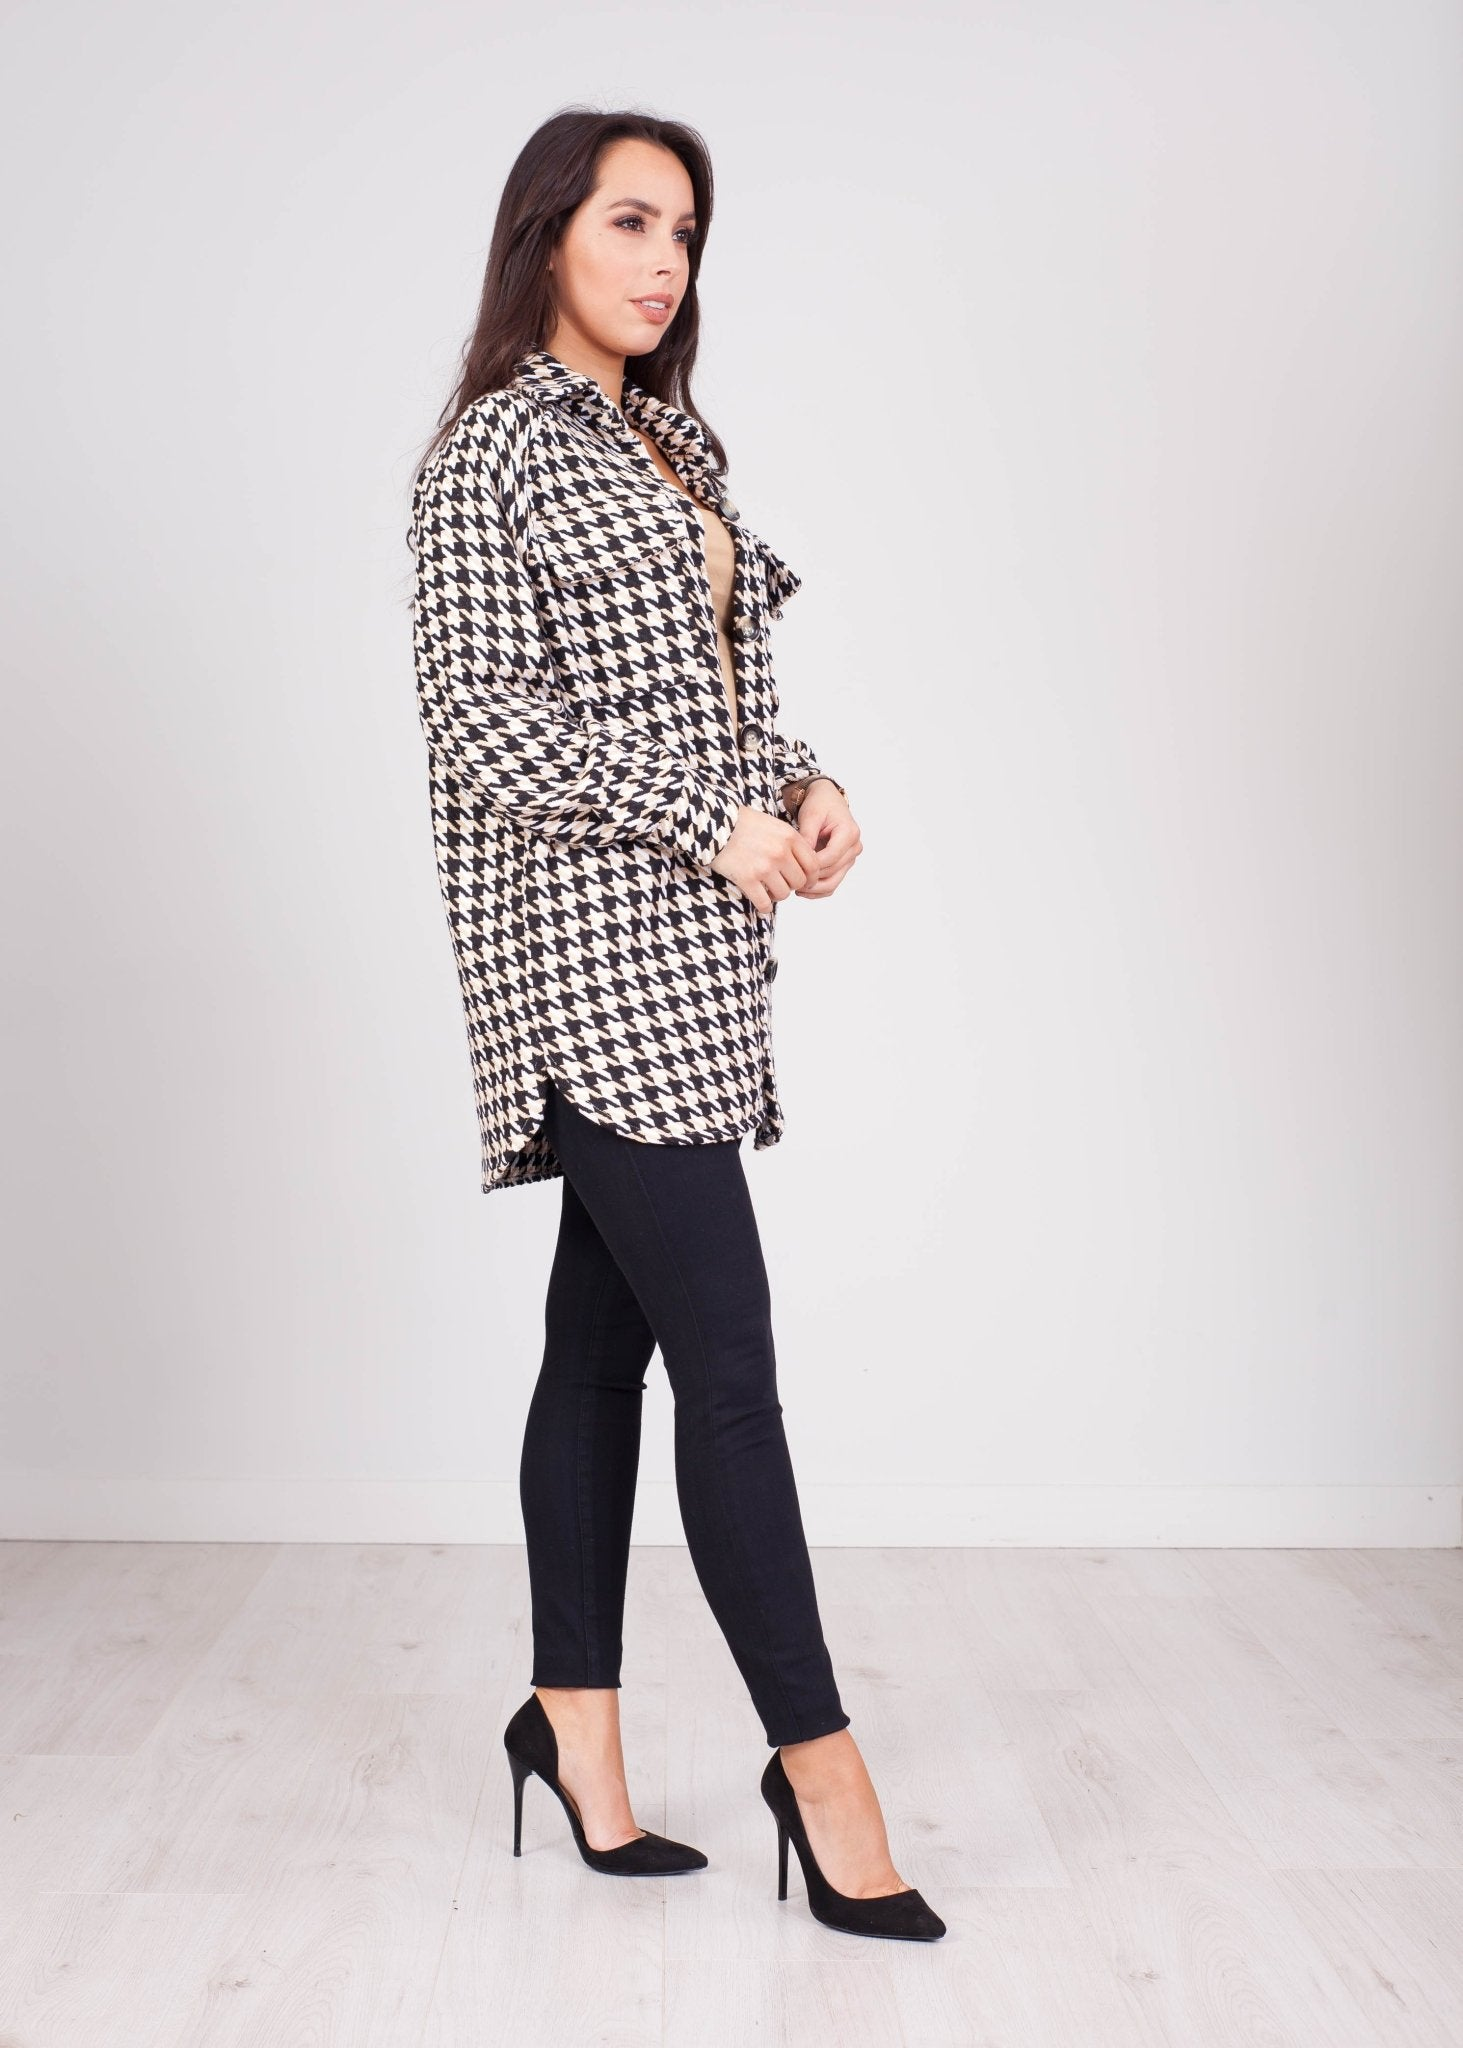 Emilia Tri Coloured Houndstooth Shacket - The Walk in Wardrobe